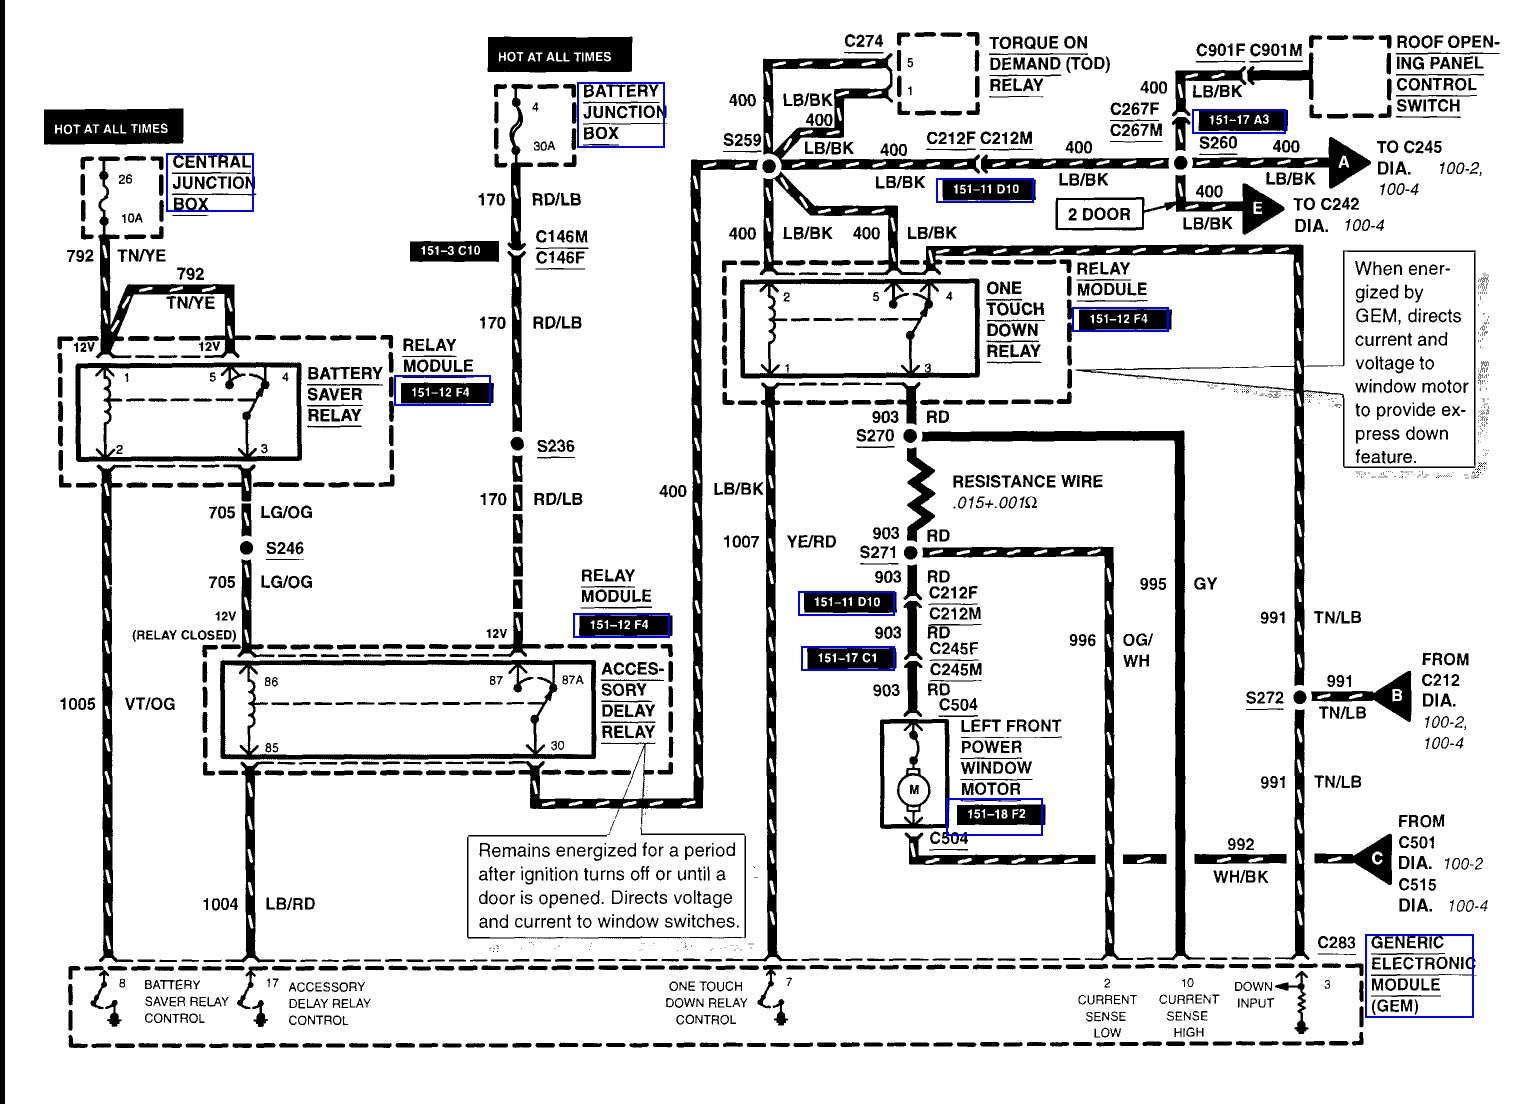 2001 ford excursion wiring diagram - schema wiring diagrams versed-class -  versed-class.cultlab.it  cultlab.it